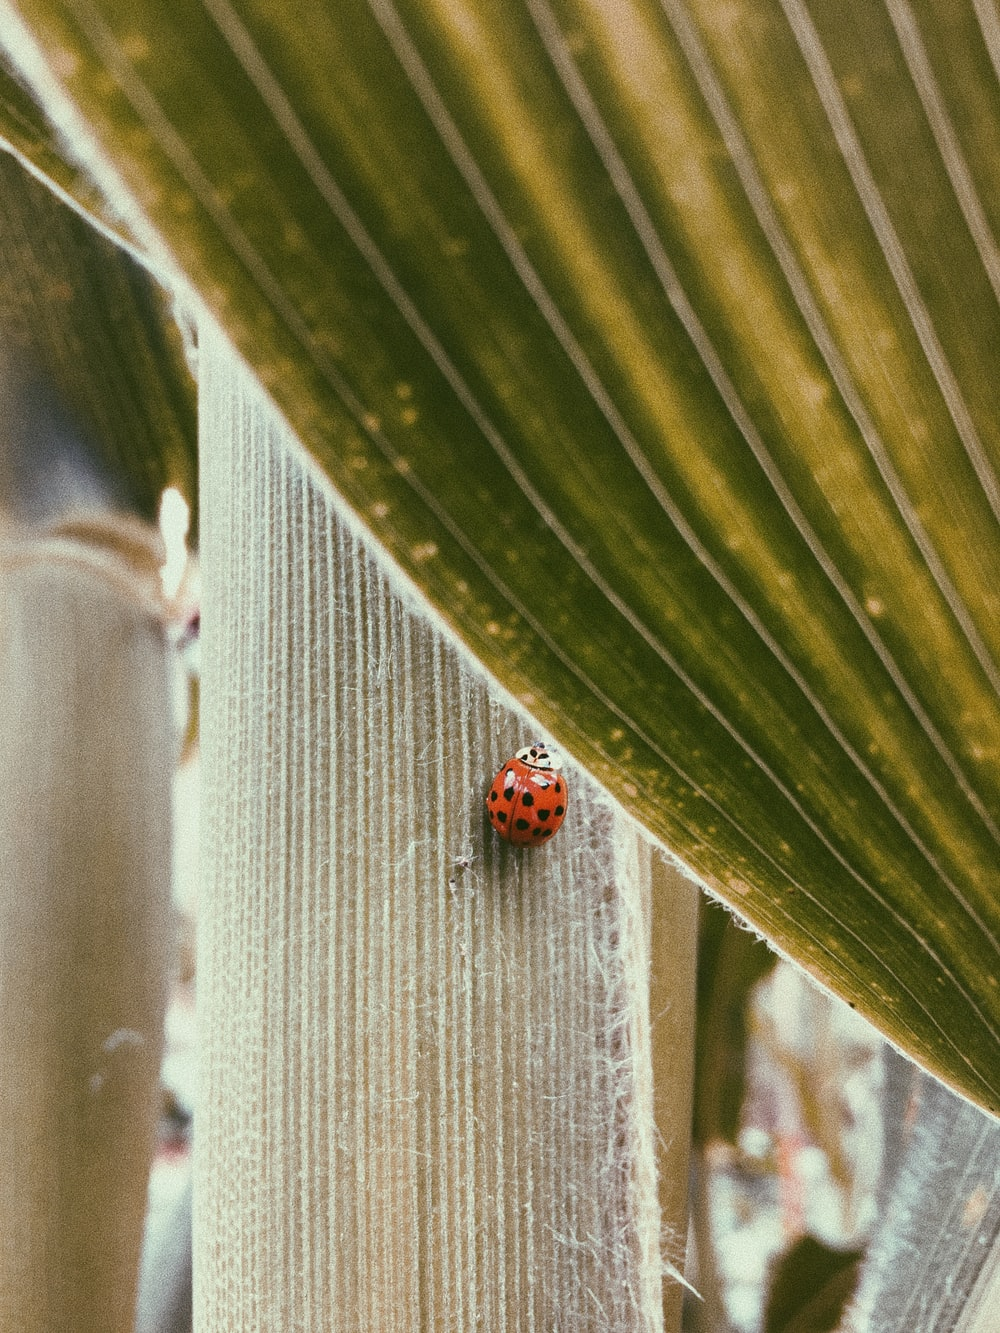 red ladybug on green plant